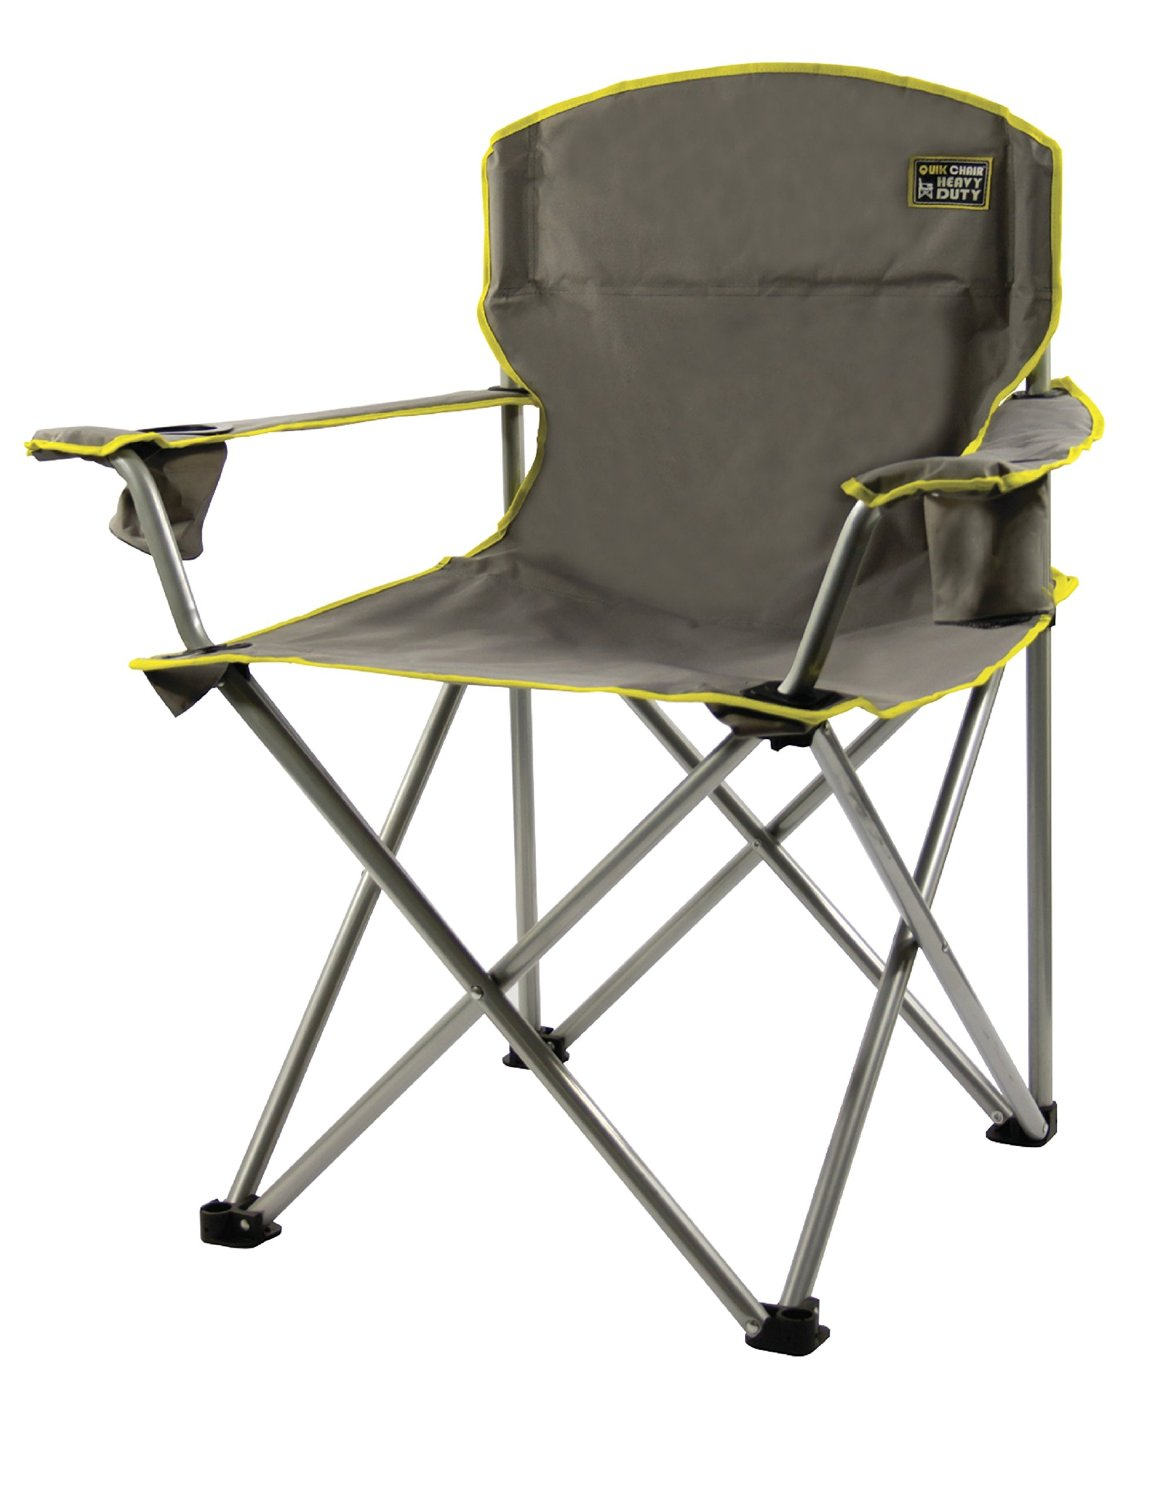 top 5 best folding camping chairs | camping chairman